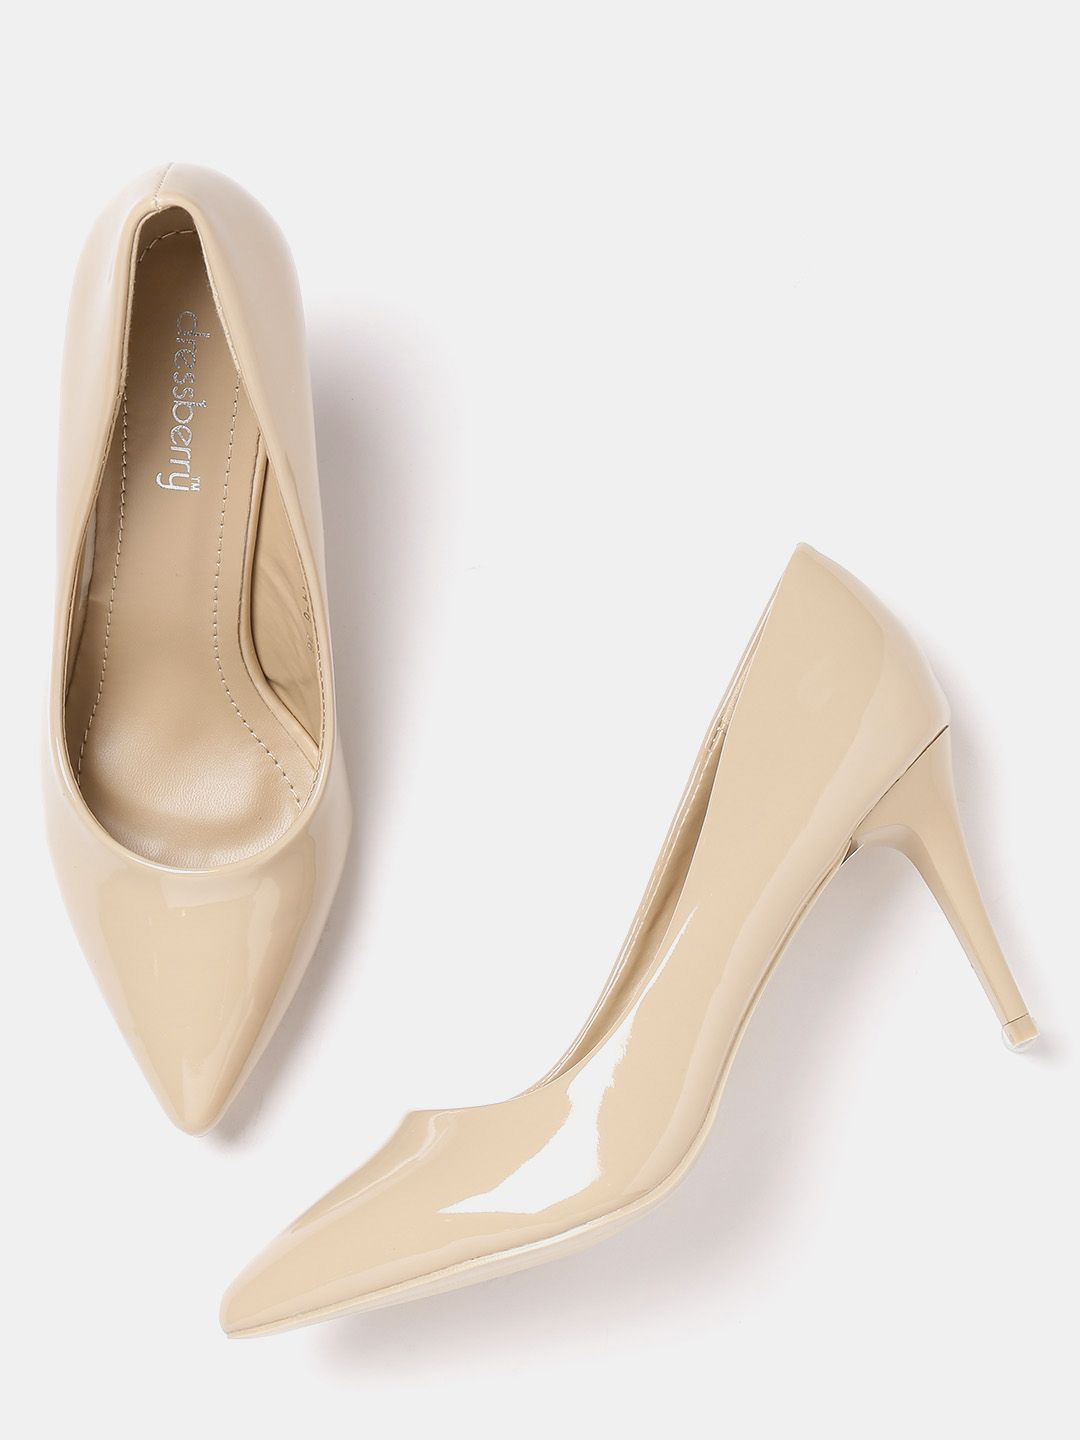 Http Amzn To 2fif3er Yes Im Gonna Git Me Women S Clothes For Fall Cute Outfits Lillian Has To See This Buy High Heels Womens Heels Heels